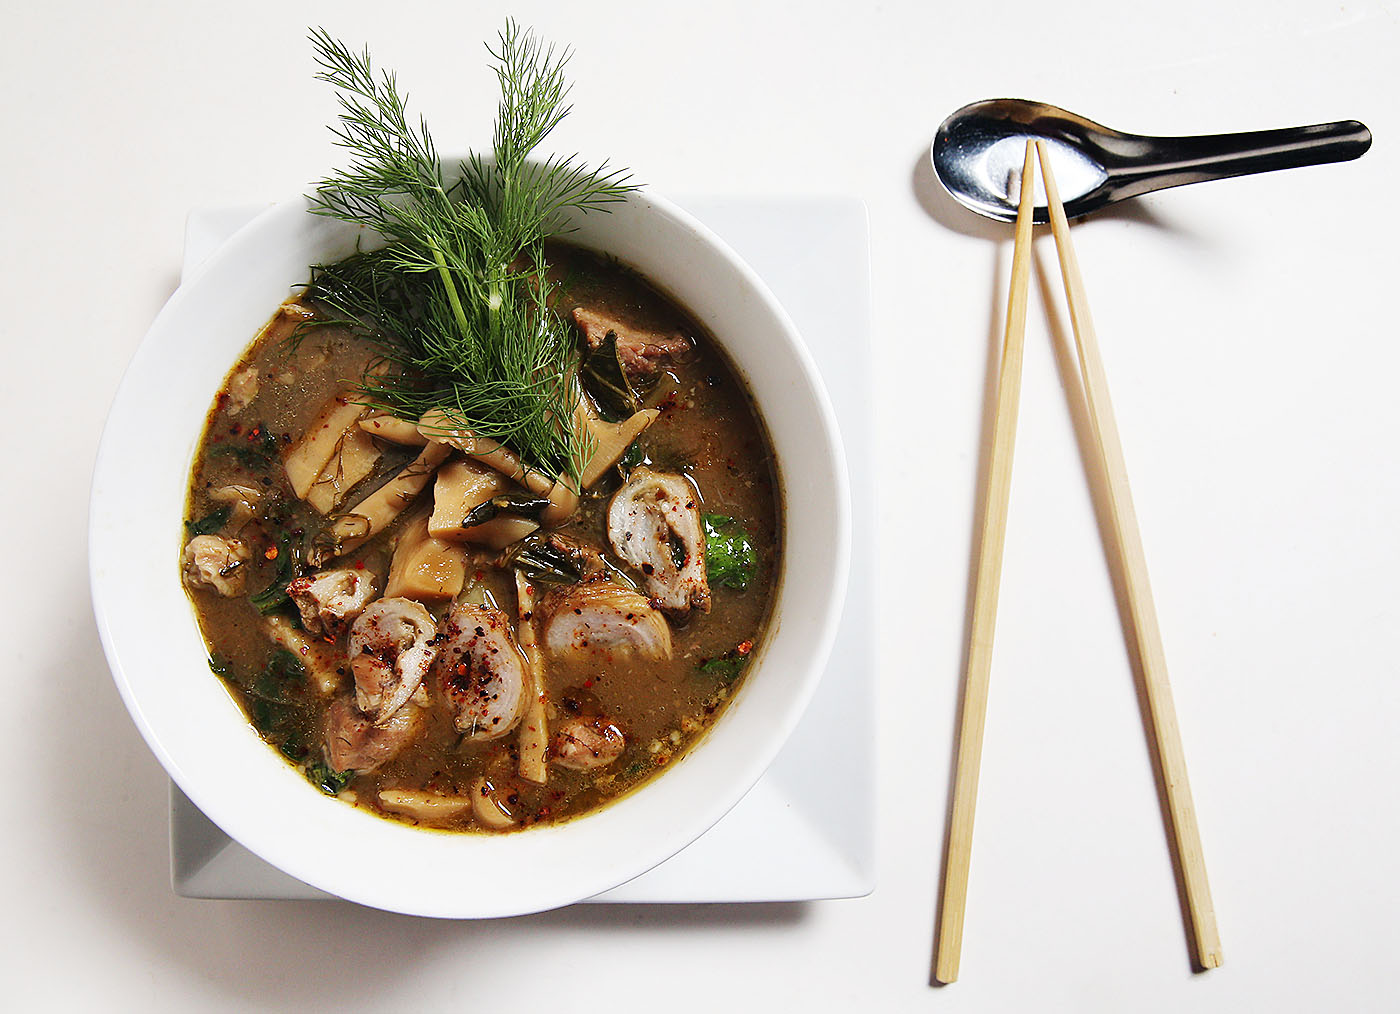 Kaydara Noodle Bar at 777 Main St. in Buffalo, serves bamboo stew. It's a seasonal special. It's made with pork, bamboo, dill, chilies, collard greens, beech mushrooms, pork chitterling and spinach. Photo taken, Wednesday, Nov. 16, 2016. (Sharon Cantillon/Buffalo News)